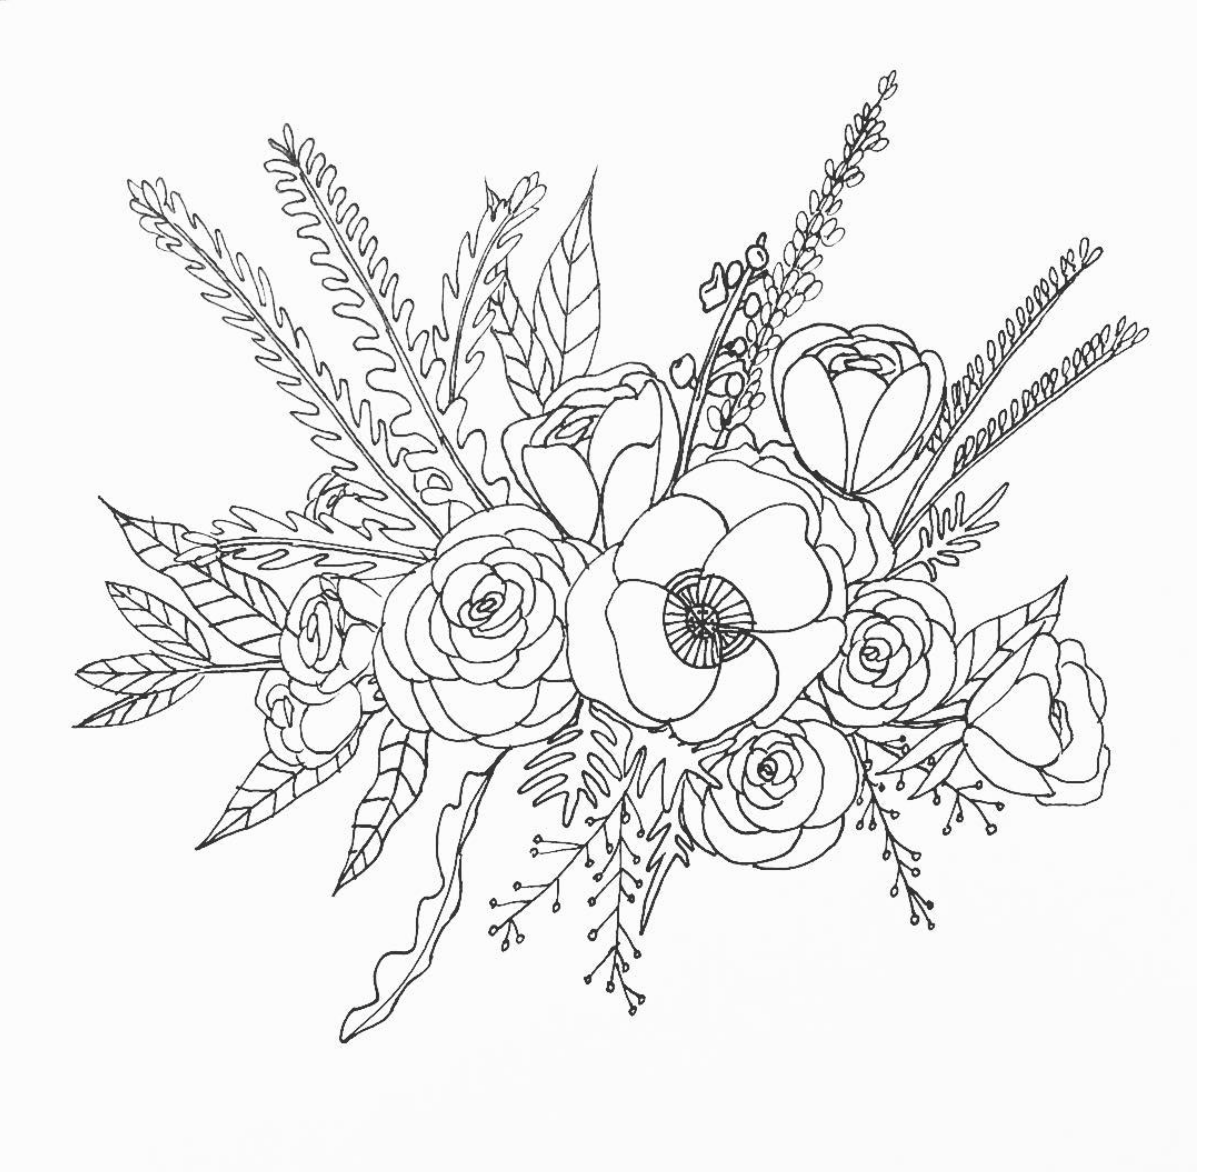 Line Drawing Flower Designs : Line drawing flower illustration floral bouquet art